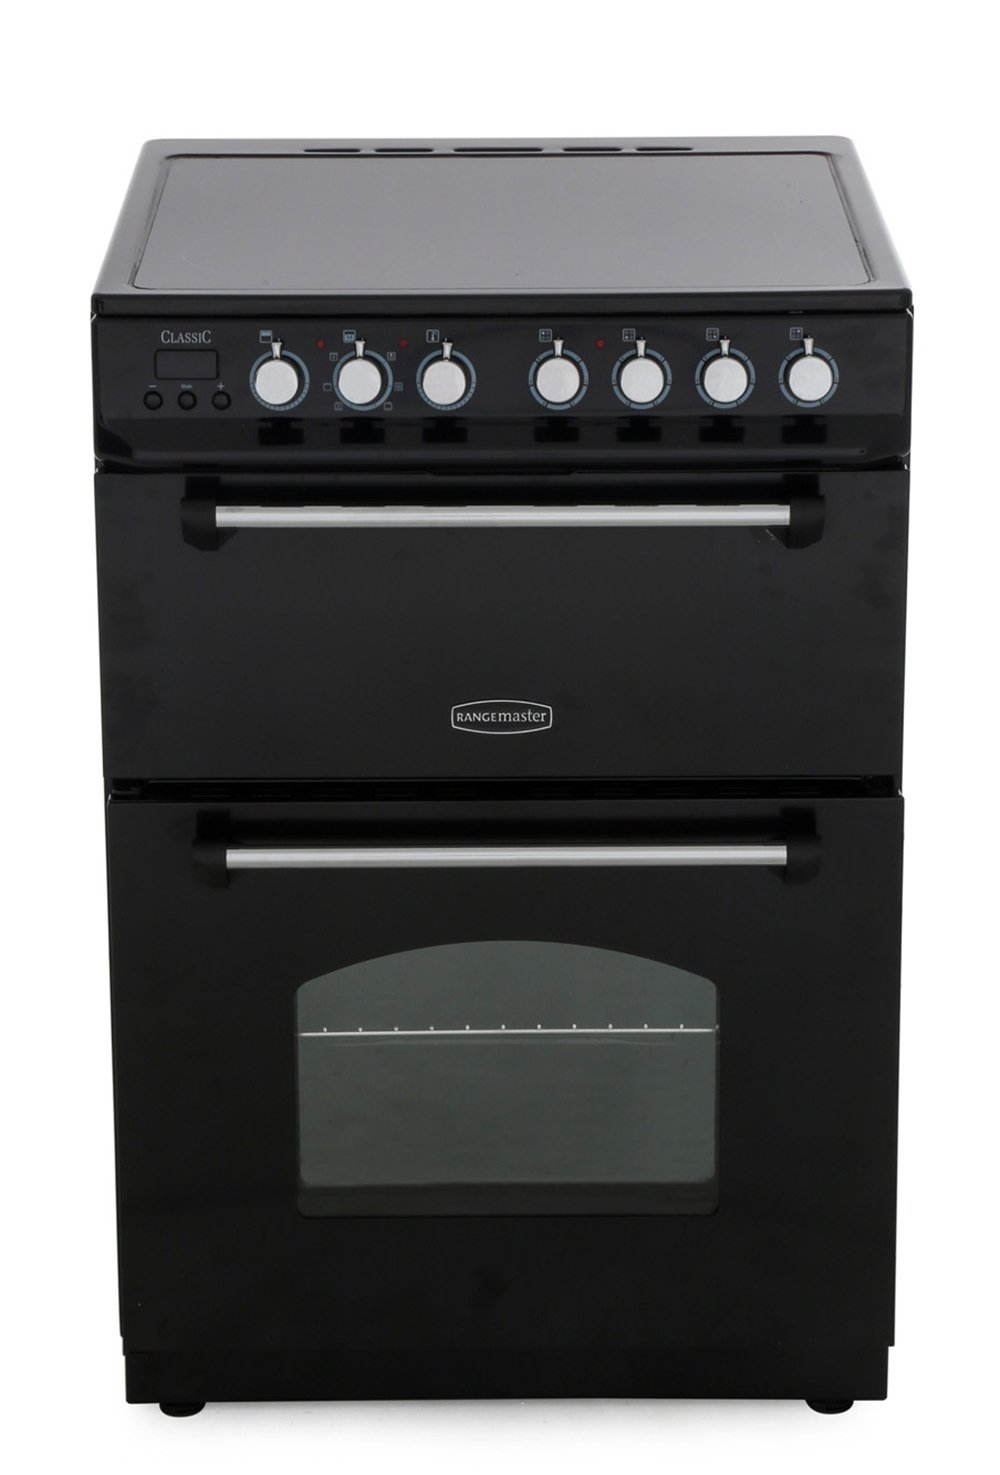 Rangemaster CLAS60ECBL/C Classic 60 Black with Chrome Trim Ceramic Electric Cooker with Double Oven